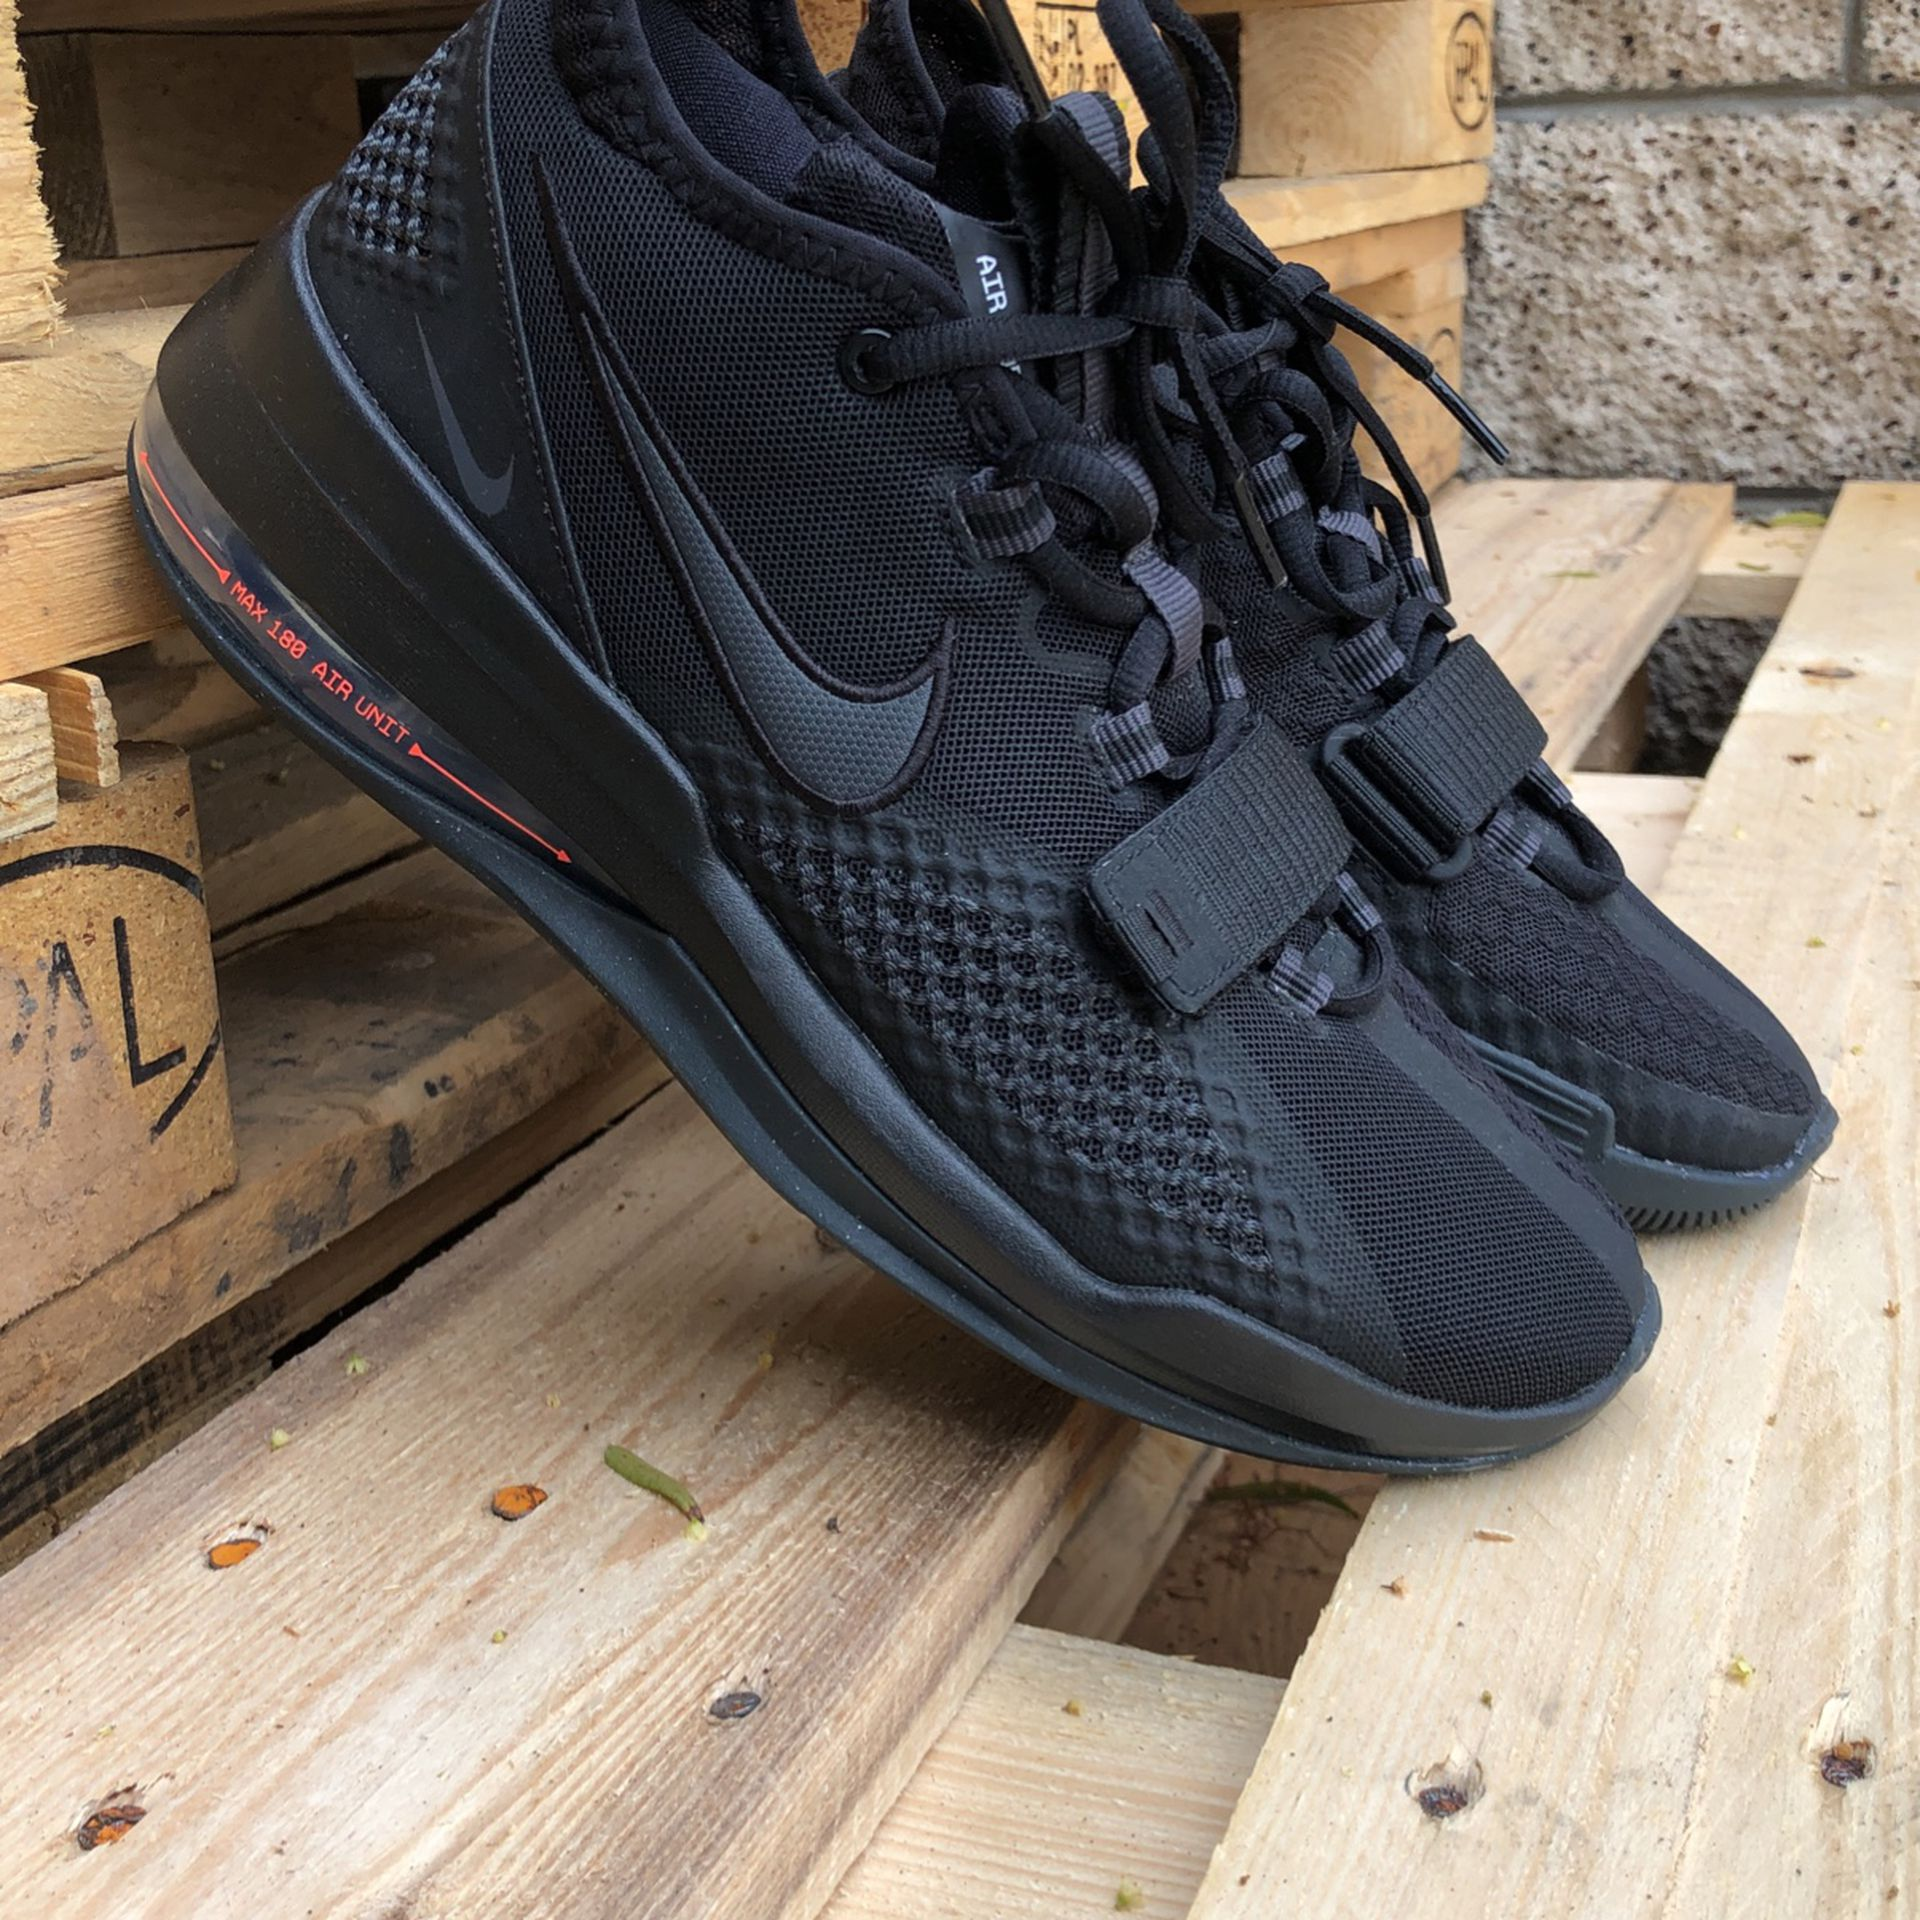 Nike Air Force Max 180 for Sale in Claremont, CA - OfferUp